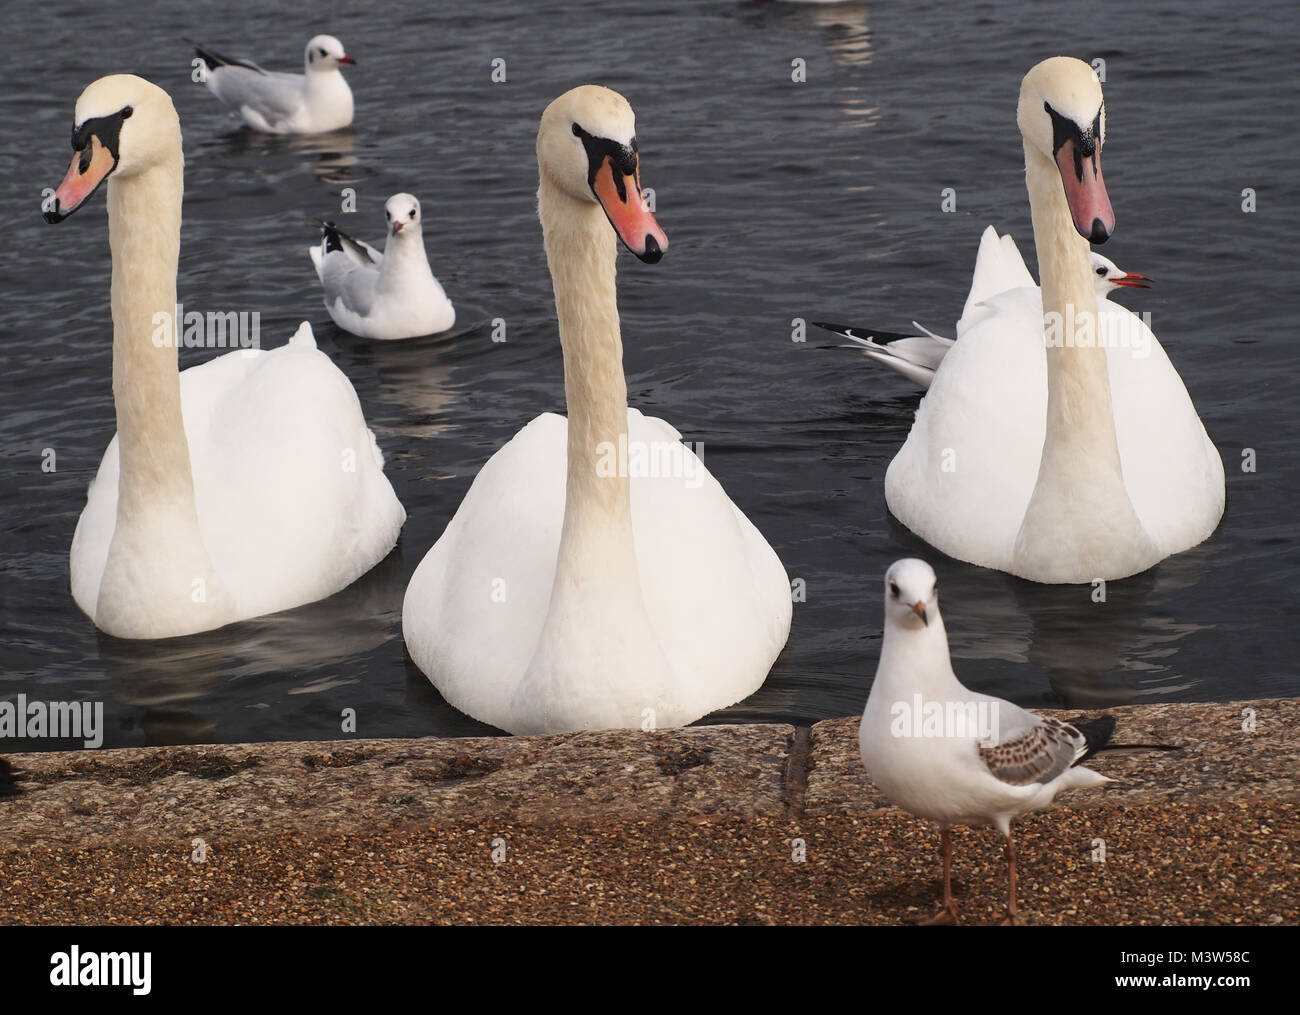 Three swans and terns looking and waiting for food at the edge of a lake in Kensington Gardens, London - Stock Image